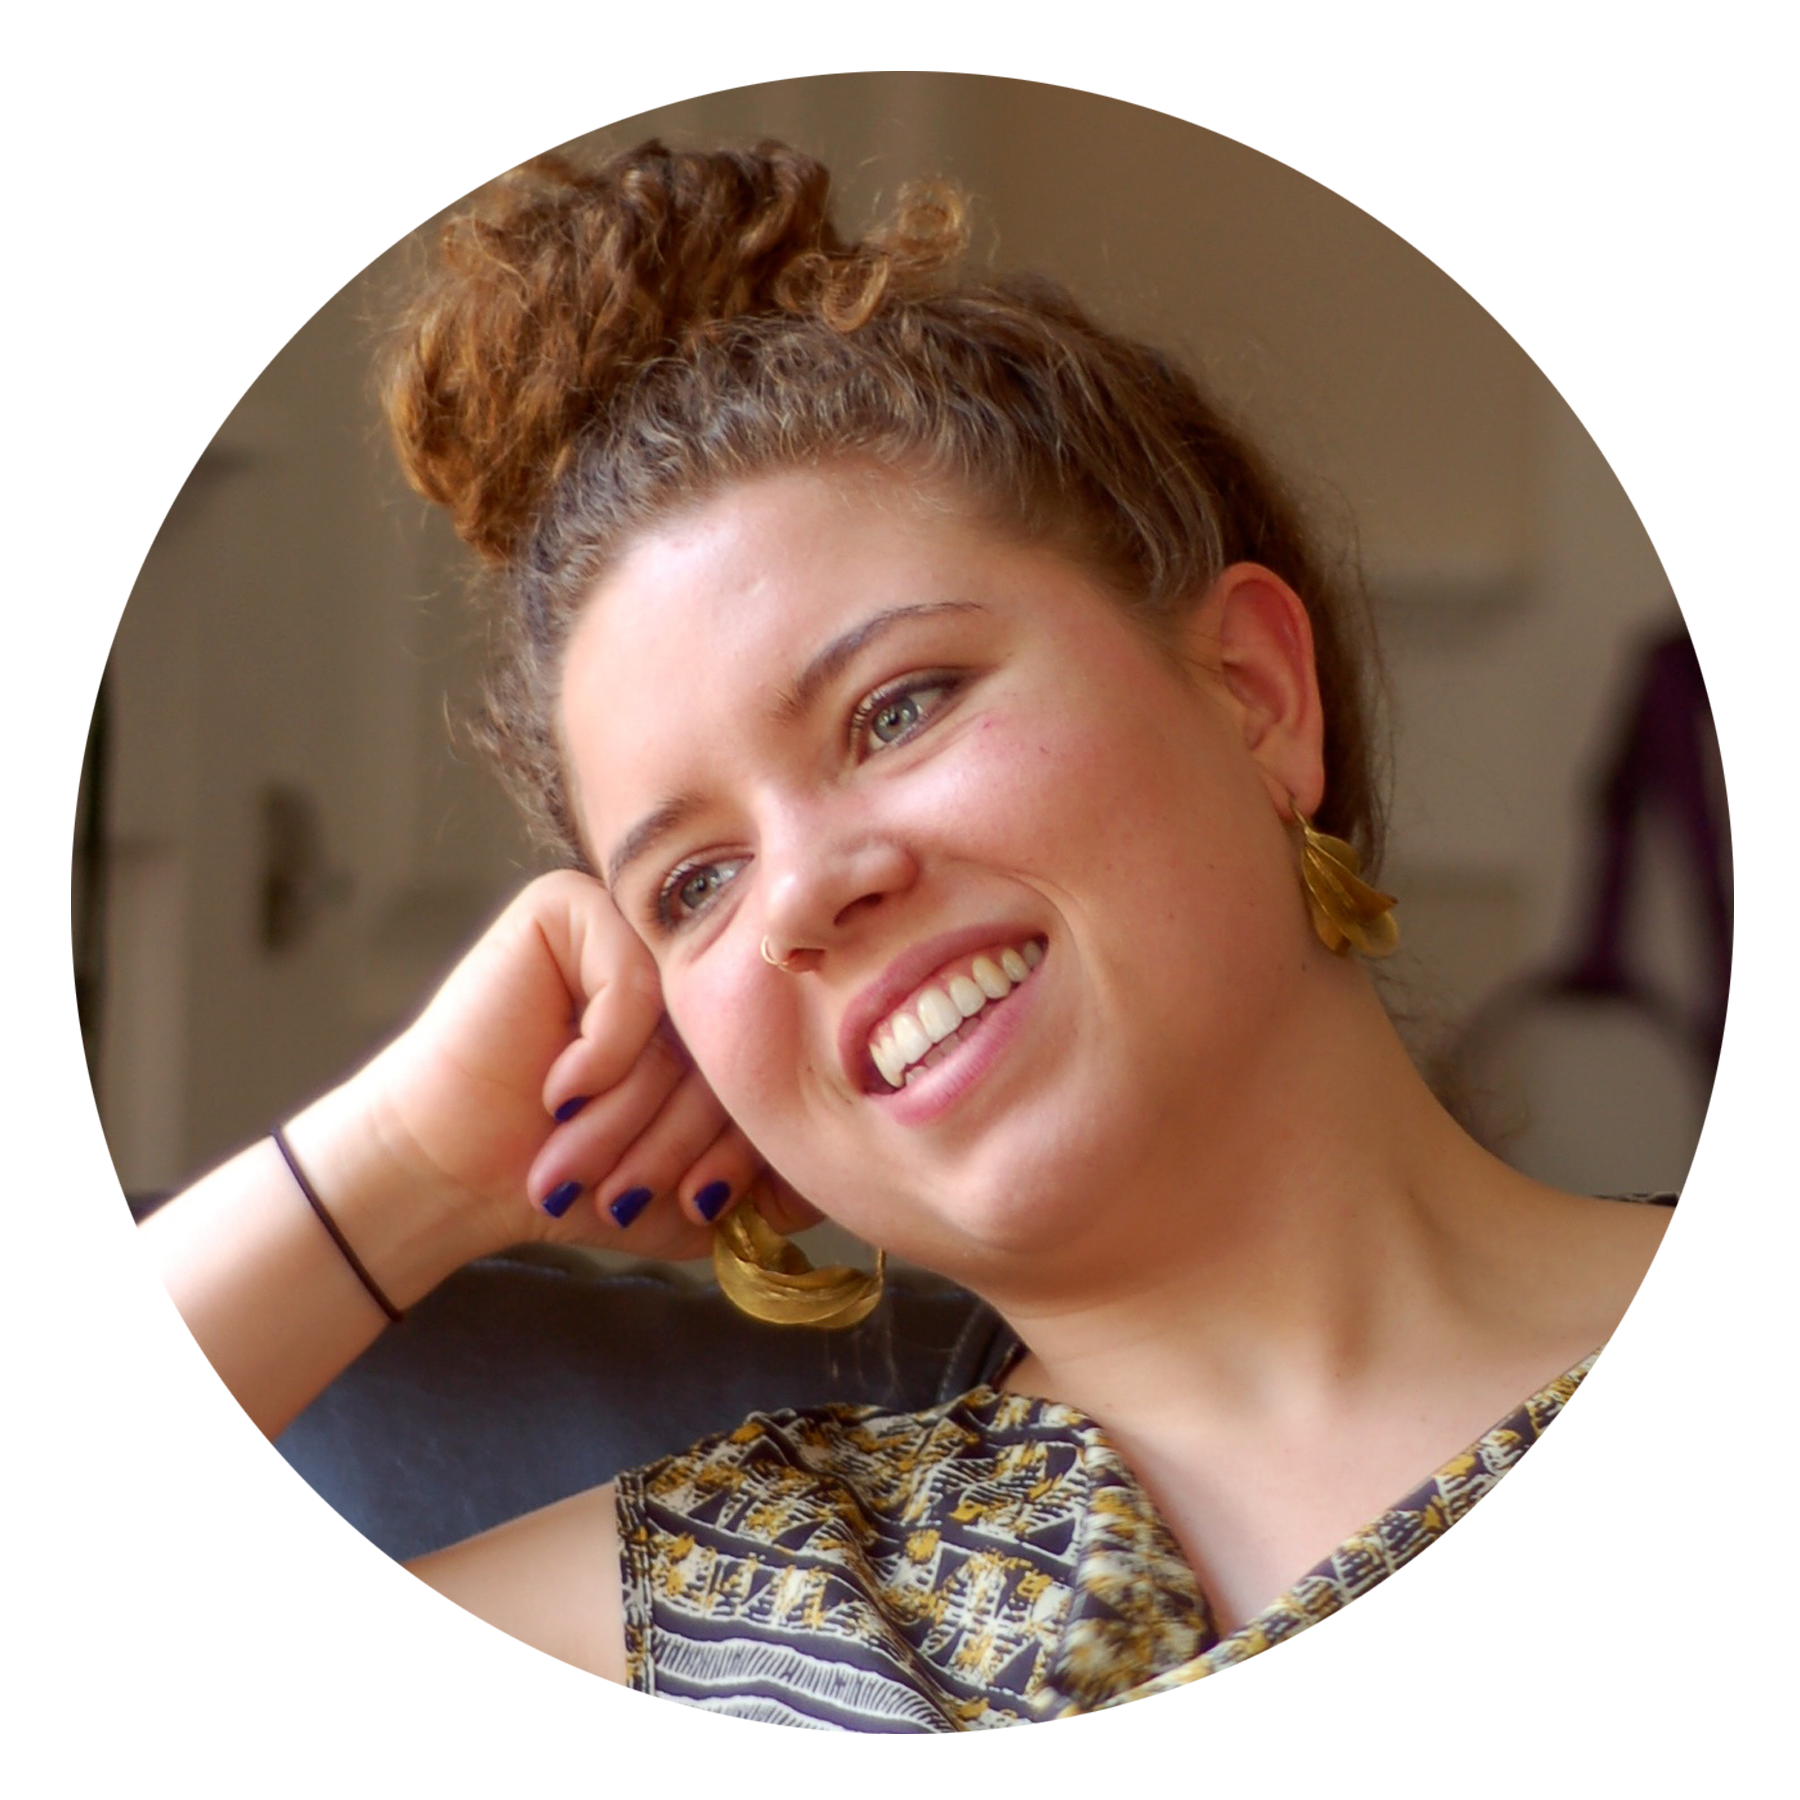 I'm passionate about the role of the arts and creativity in developing vibrant people and communities. - Alison Kibbe / Associate